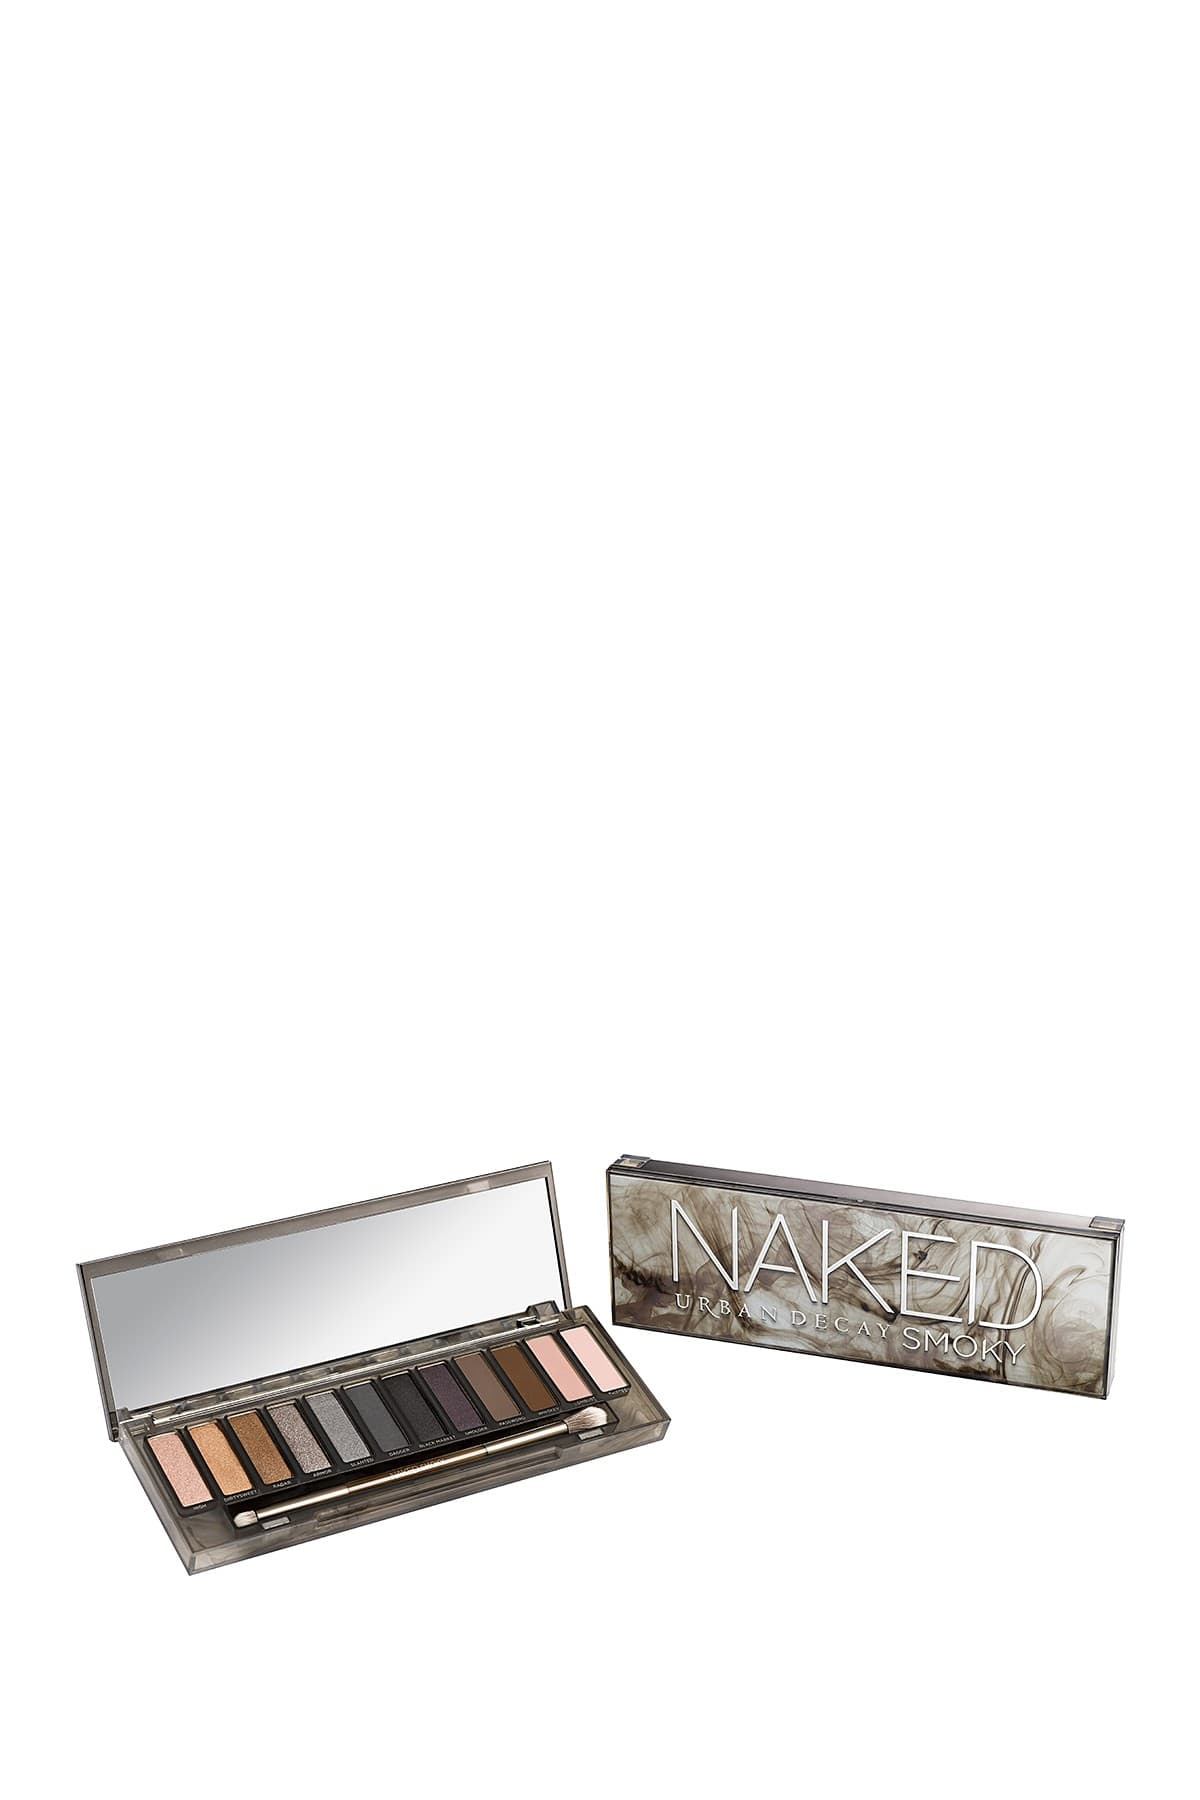 Urban Decay Naked Smoky Eyeshadow Palette $24.97 + Free Shipping